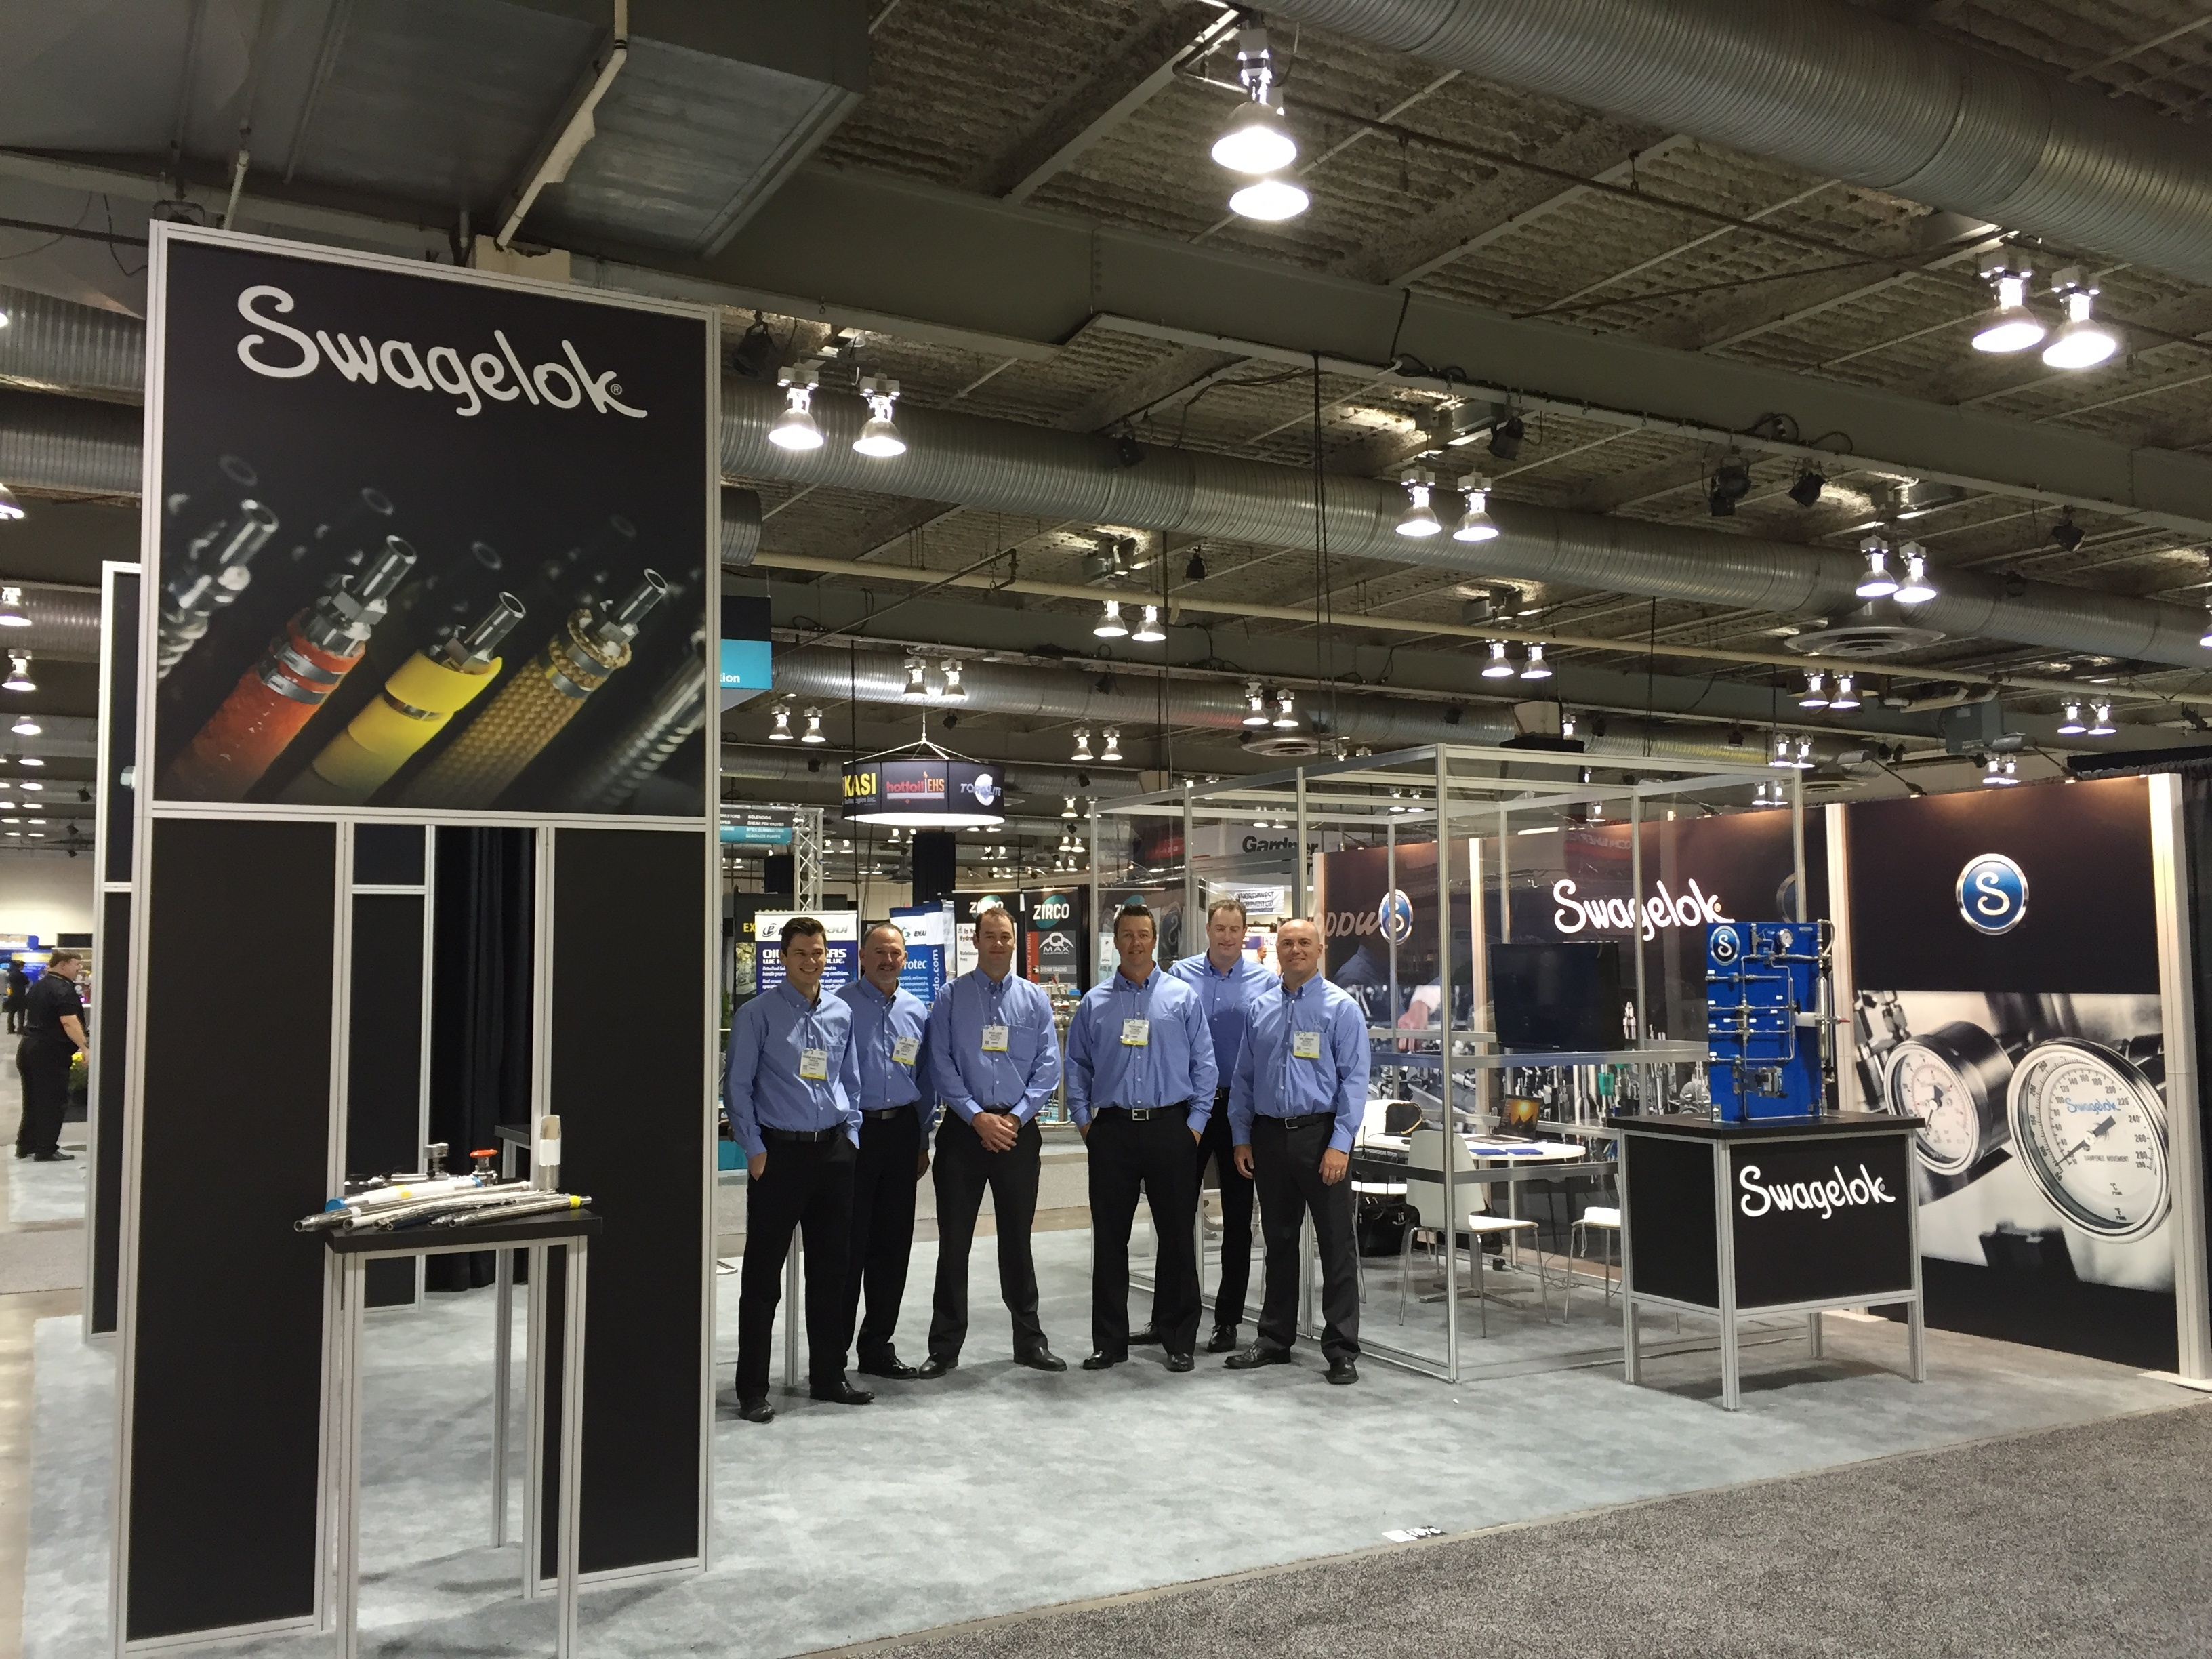 Swagelok at the Global Petroleum Show in Calgary (June 12th-14th)